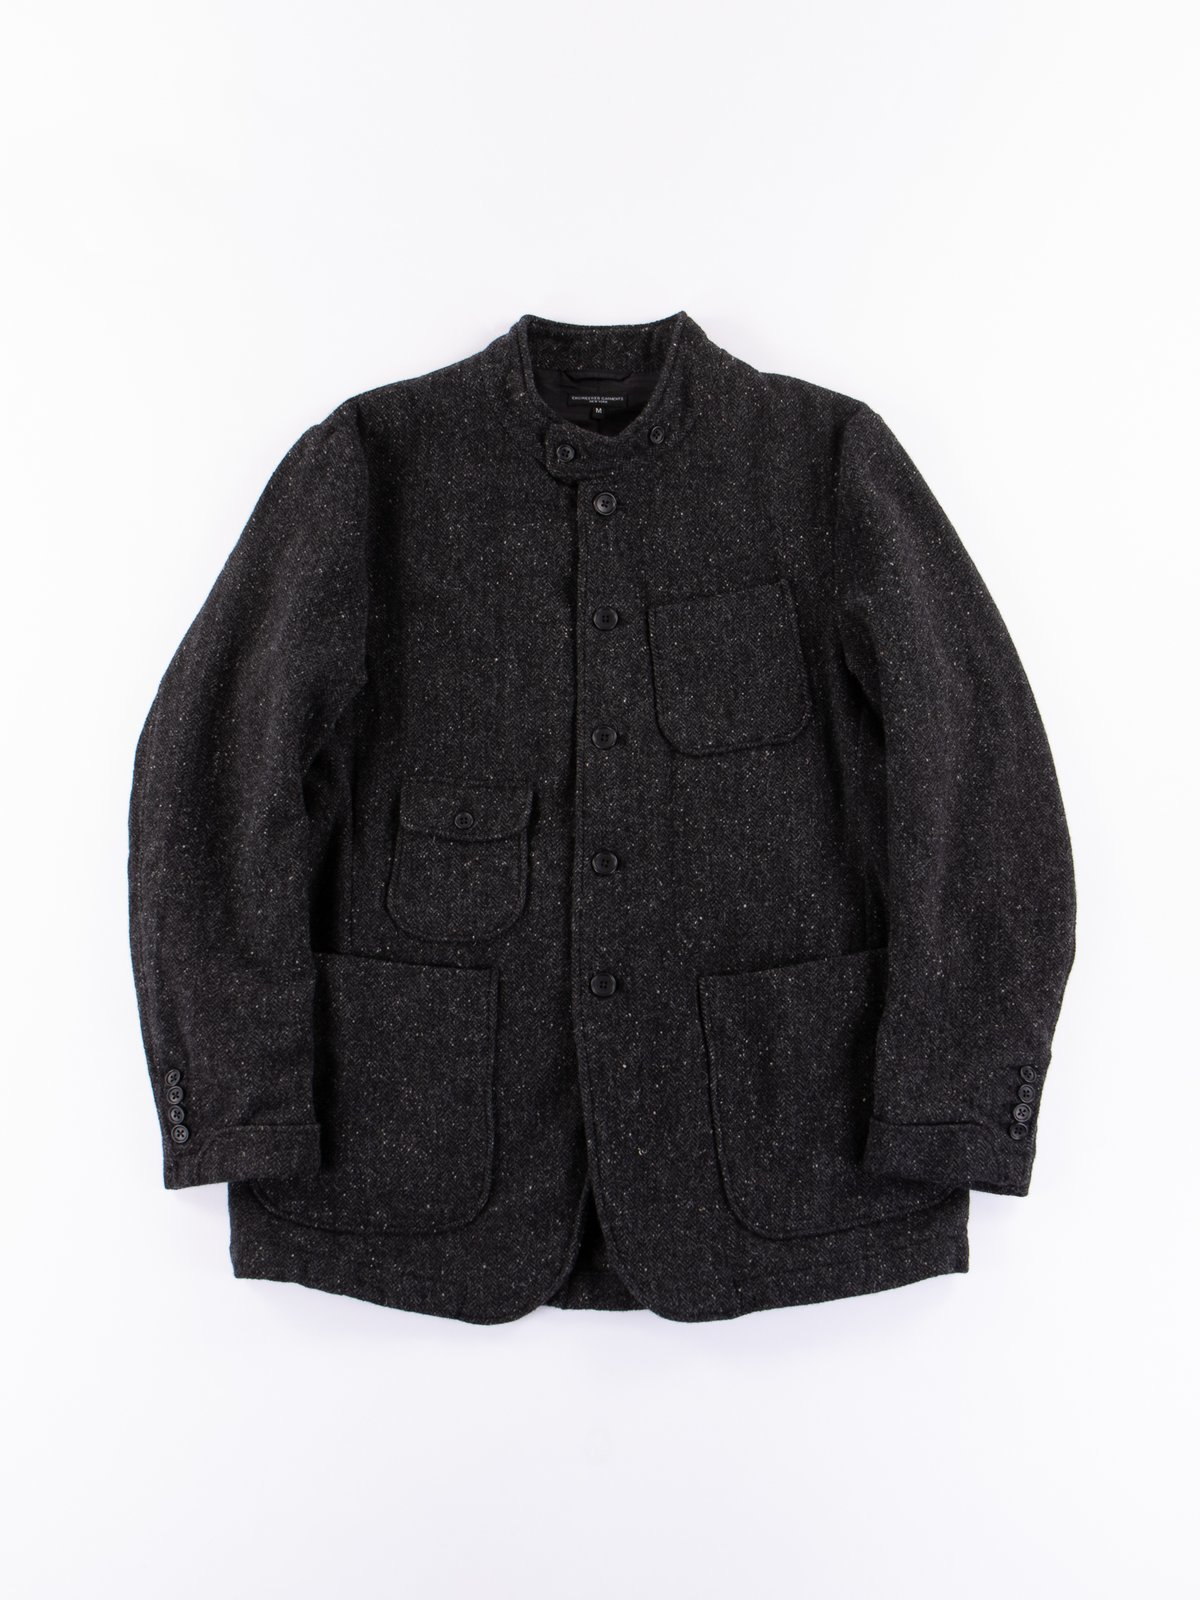 Charcoal HB Tweed Grim Jacket - Image 1